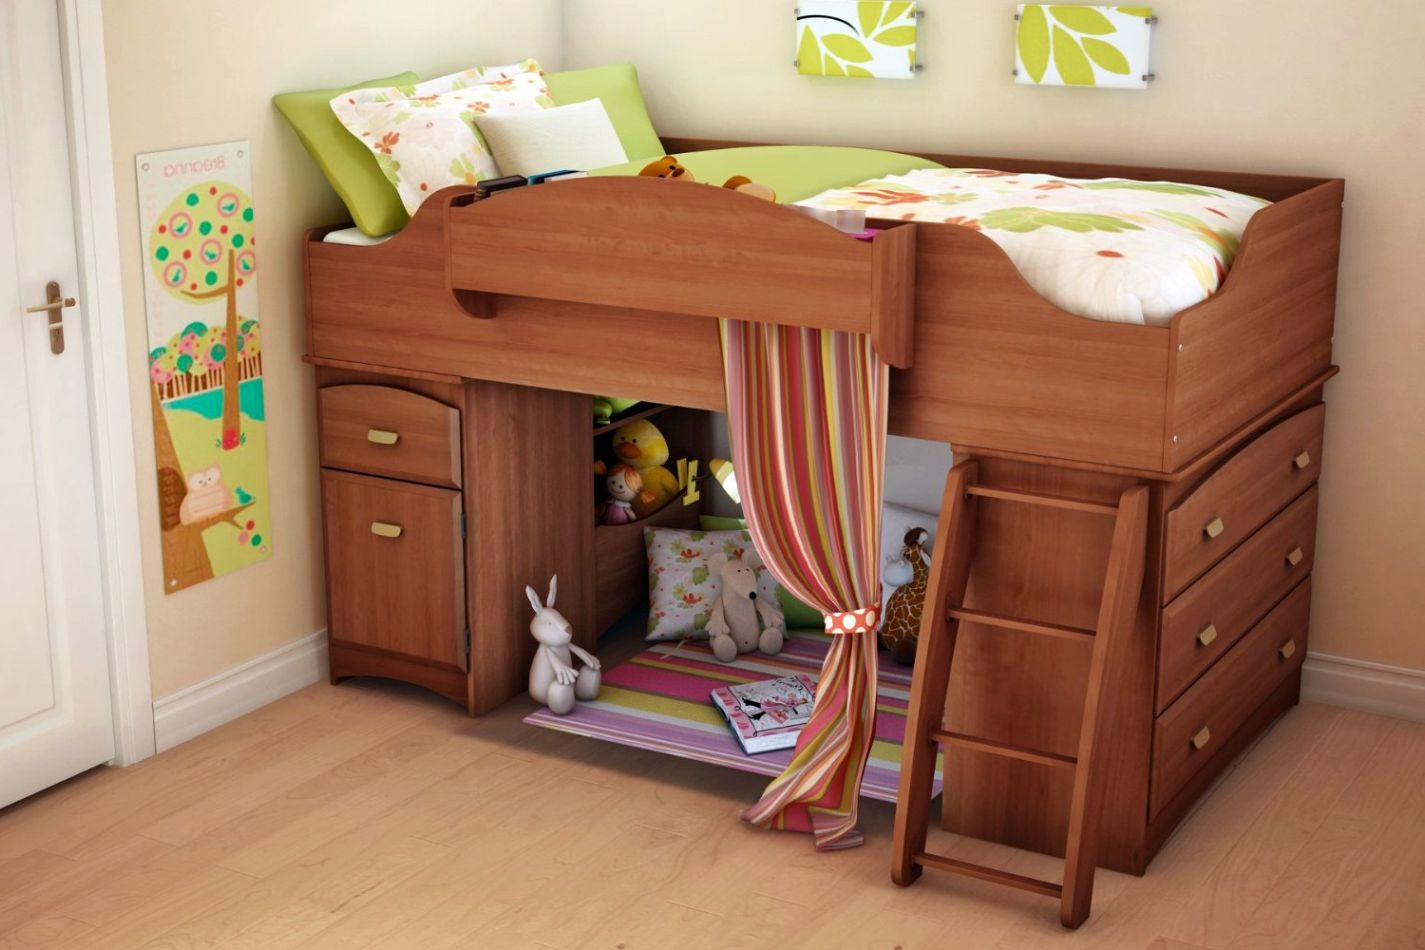 14 adorable modern loft beds design ideas for your kids for How to design a loft